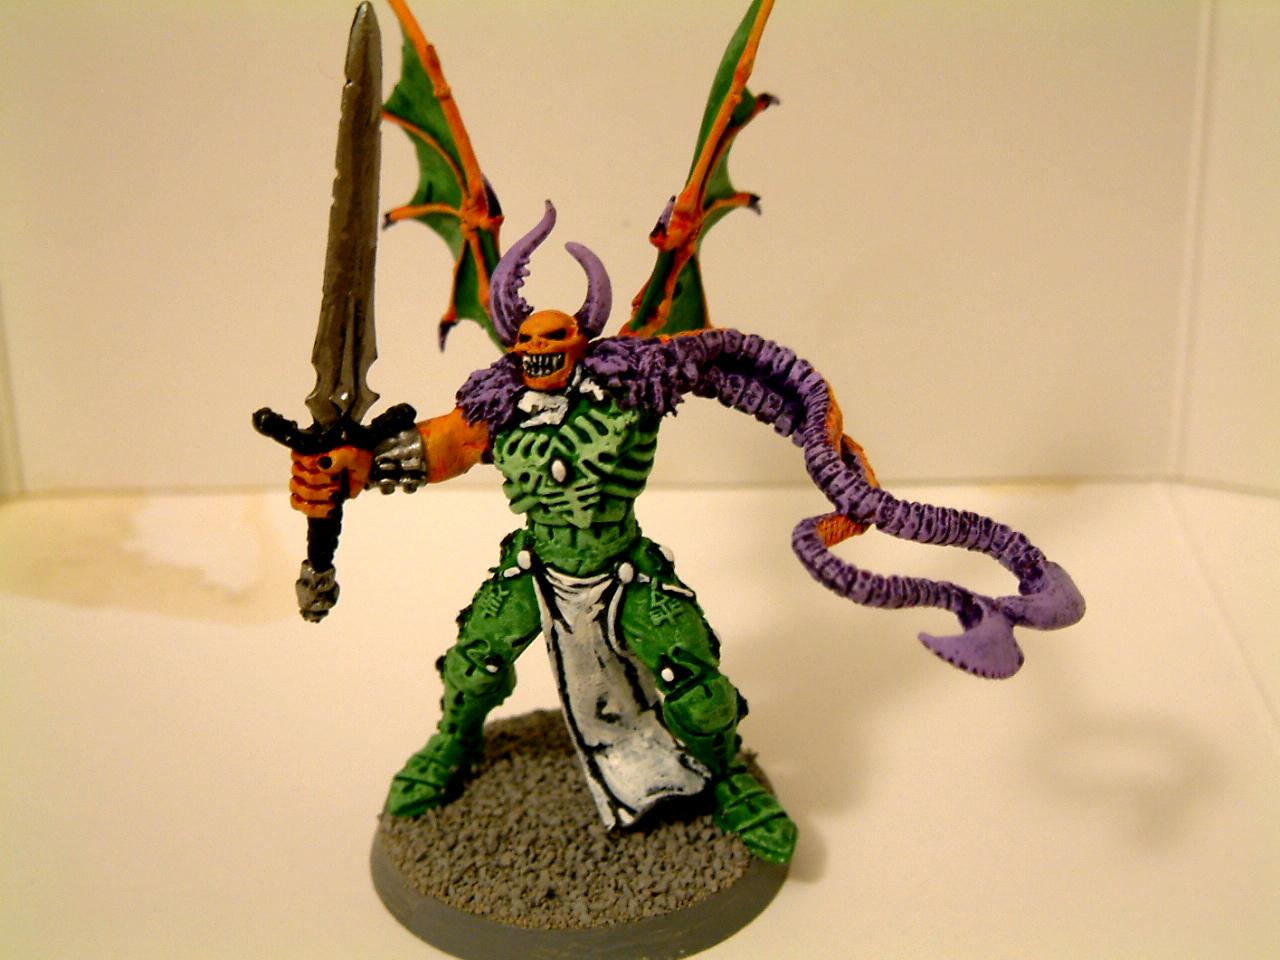 Chaos, Classic, Conversion, Daemonettes, Daemons, Fiends, Green, Old, Orange, Out Of Production, Purple, Slaanesh, Warhammer 40,000